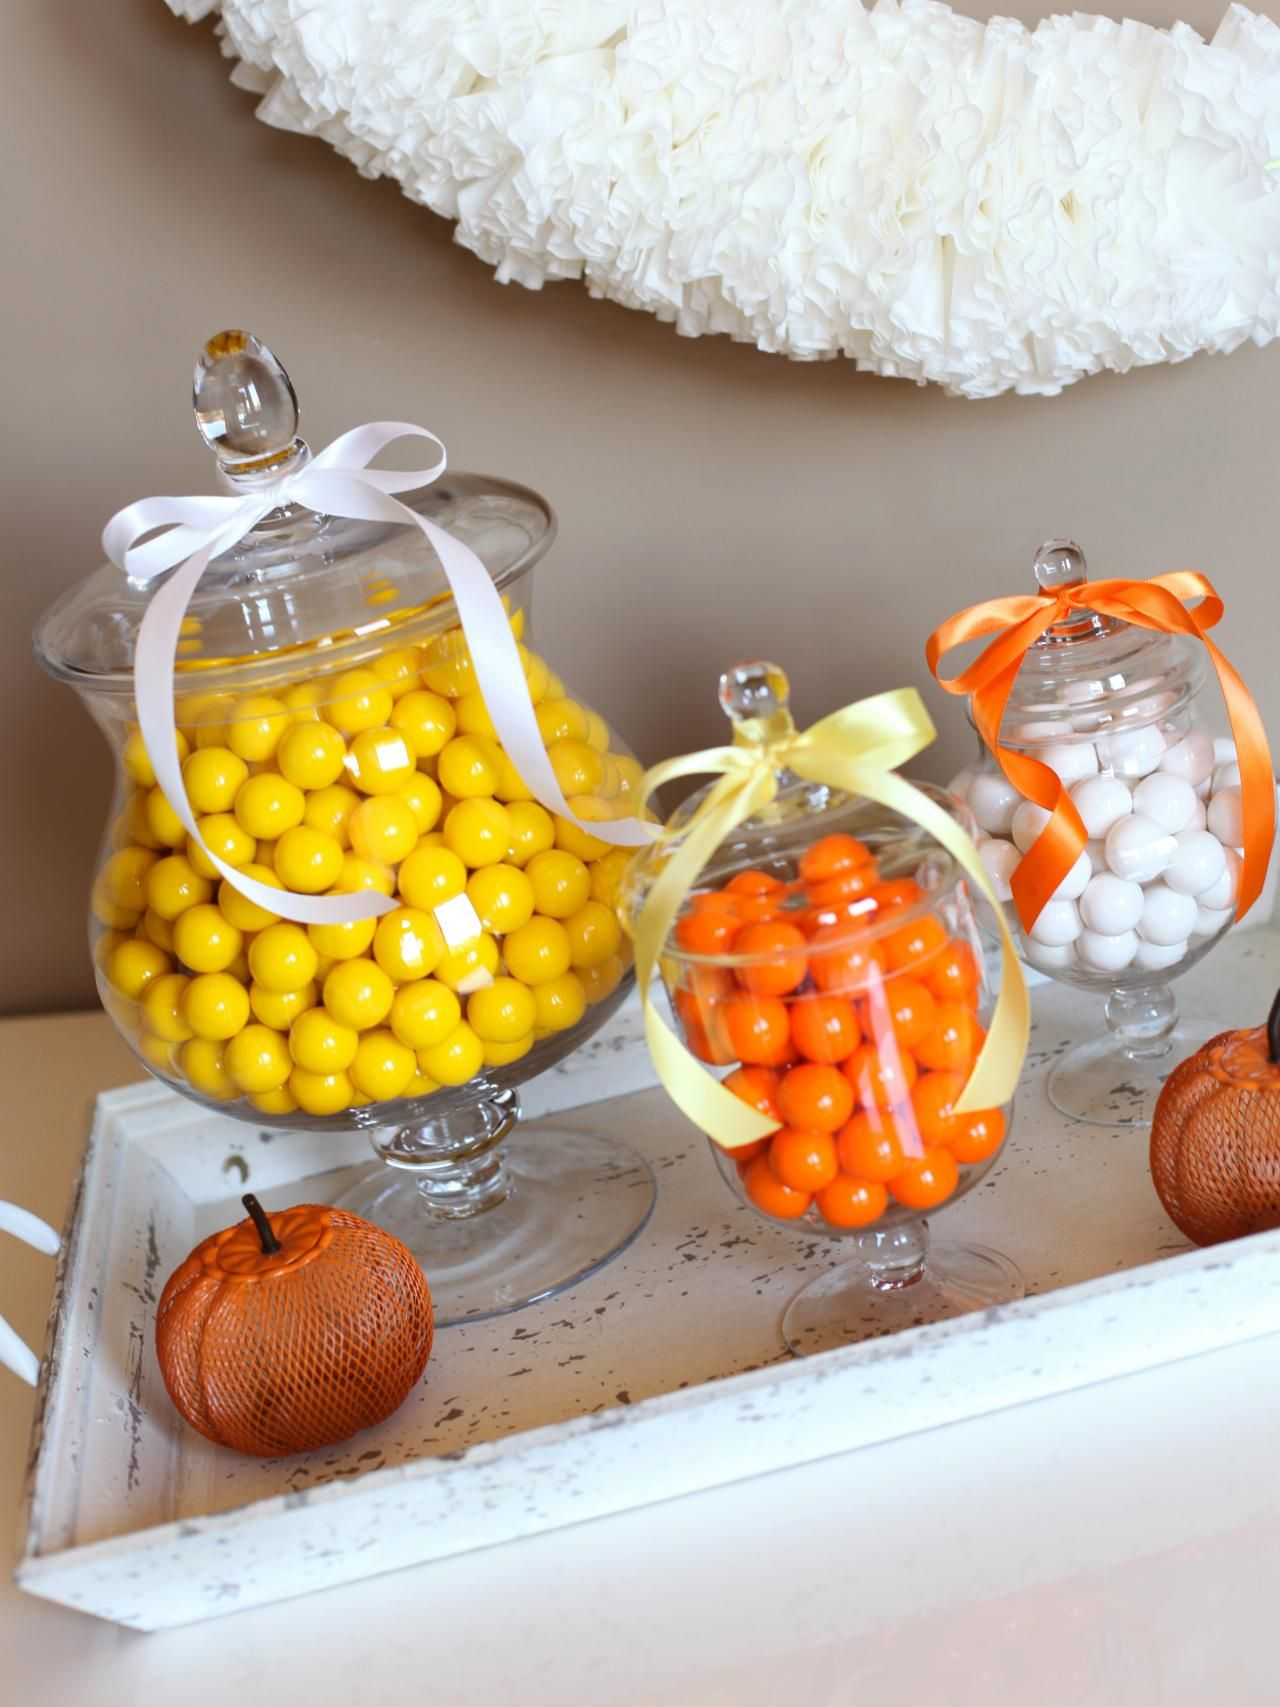 Easy Halloween Party Decorations You Can Make For About $5 Easy - How To Make Halloween Decorations